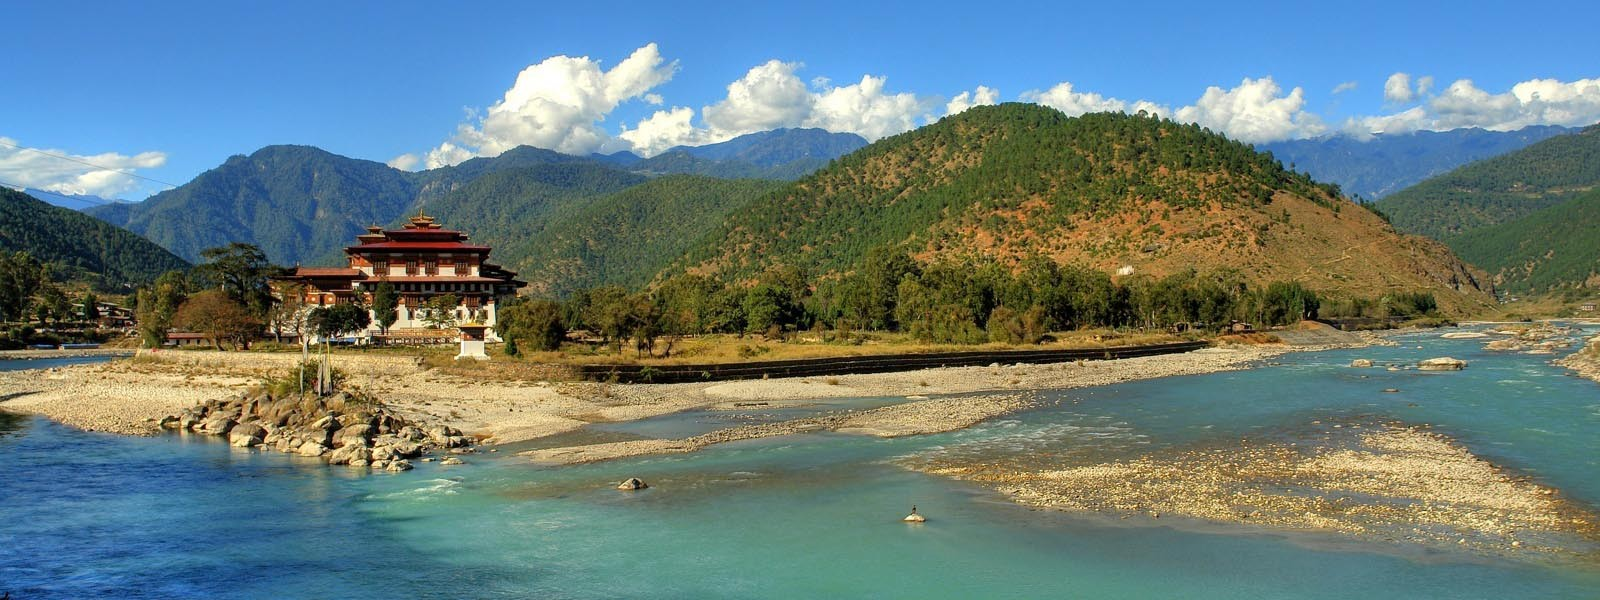 Journeys to Druk-Yul Bhutan